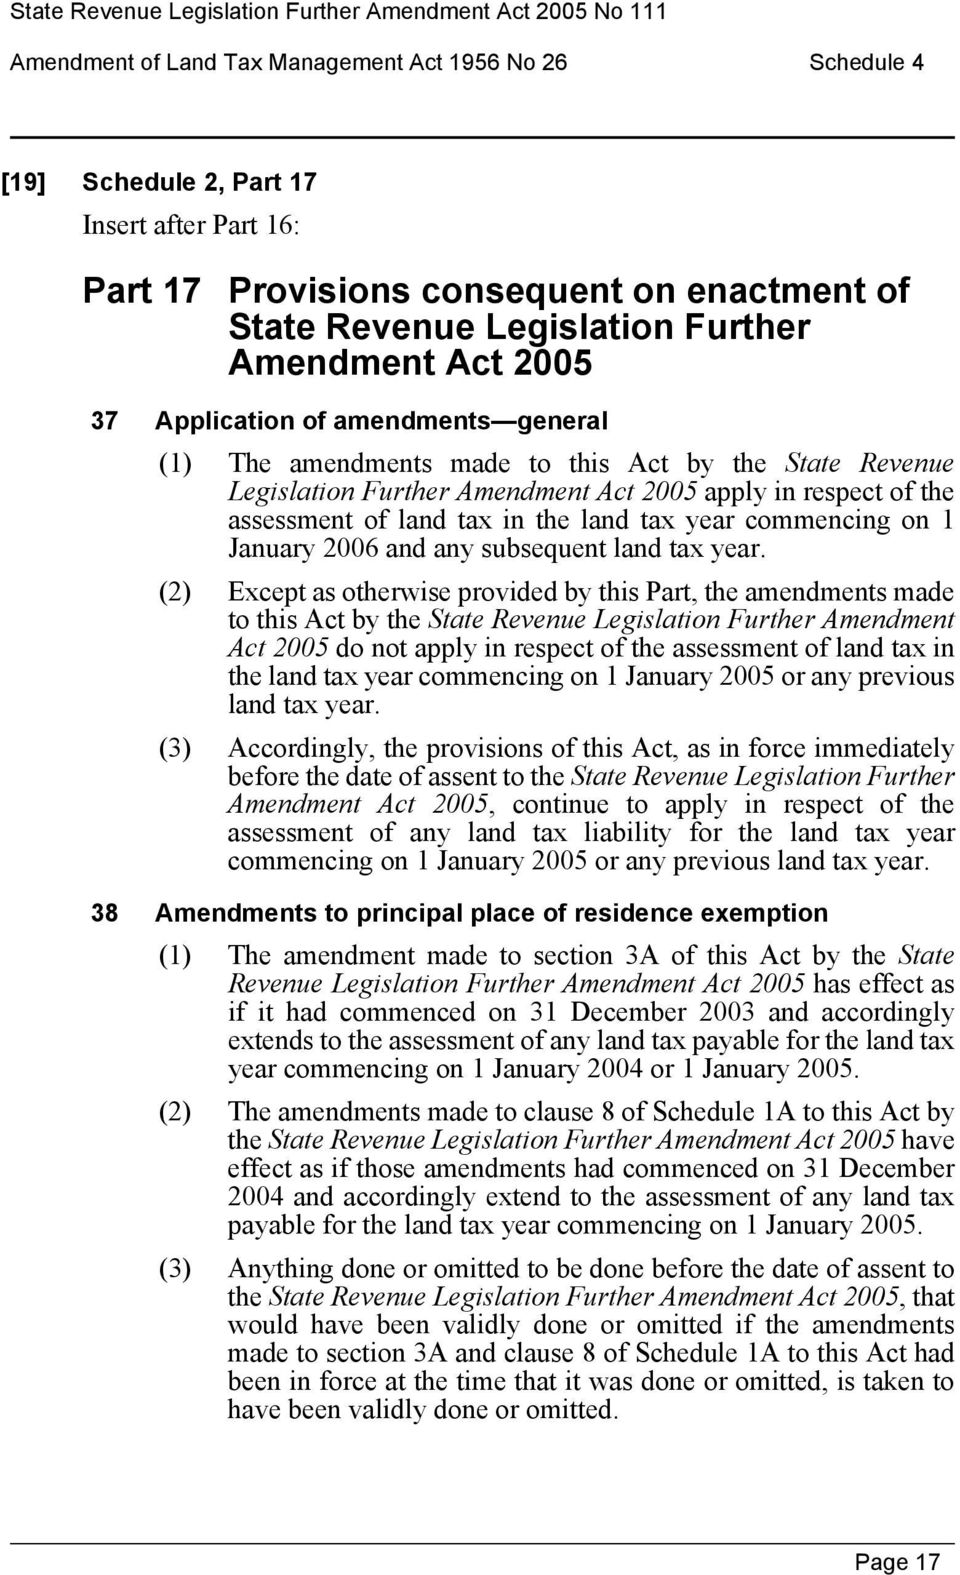 a taxing amendment the revenue act essay Inland revenue (amendment) act no 18 of 2013 1 tax exemptions 11 institutions exemption from income tax is granted in respect of the profits and income, other than dividends and interest, of –.